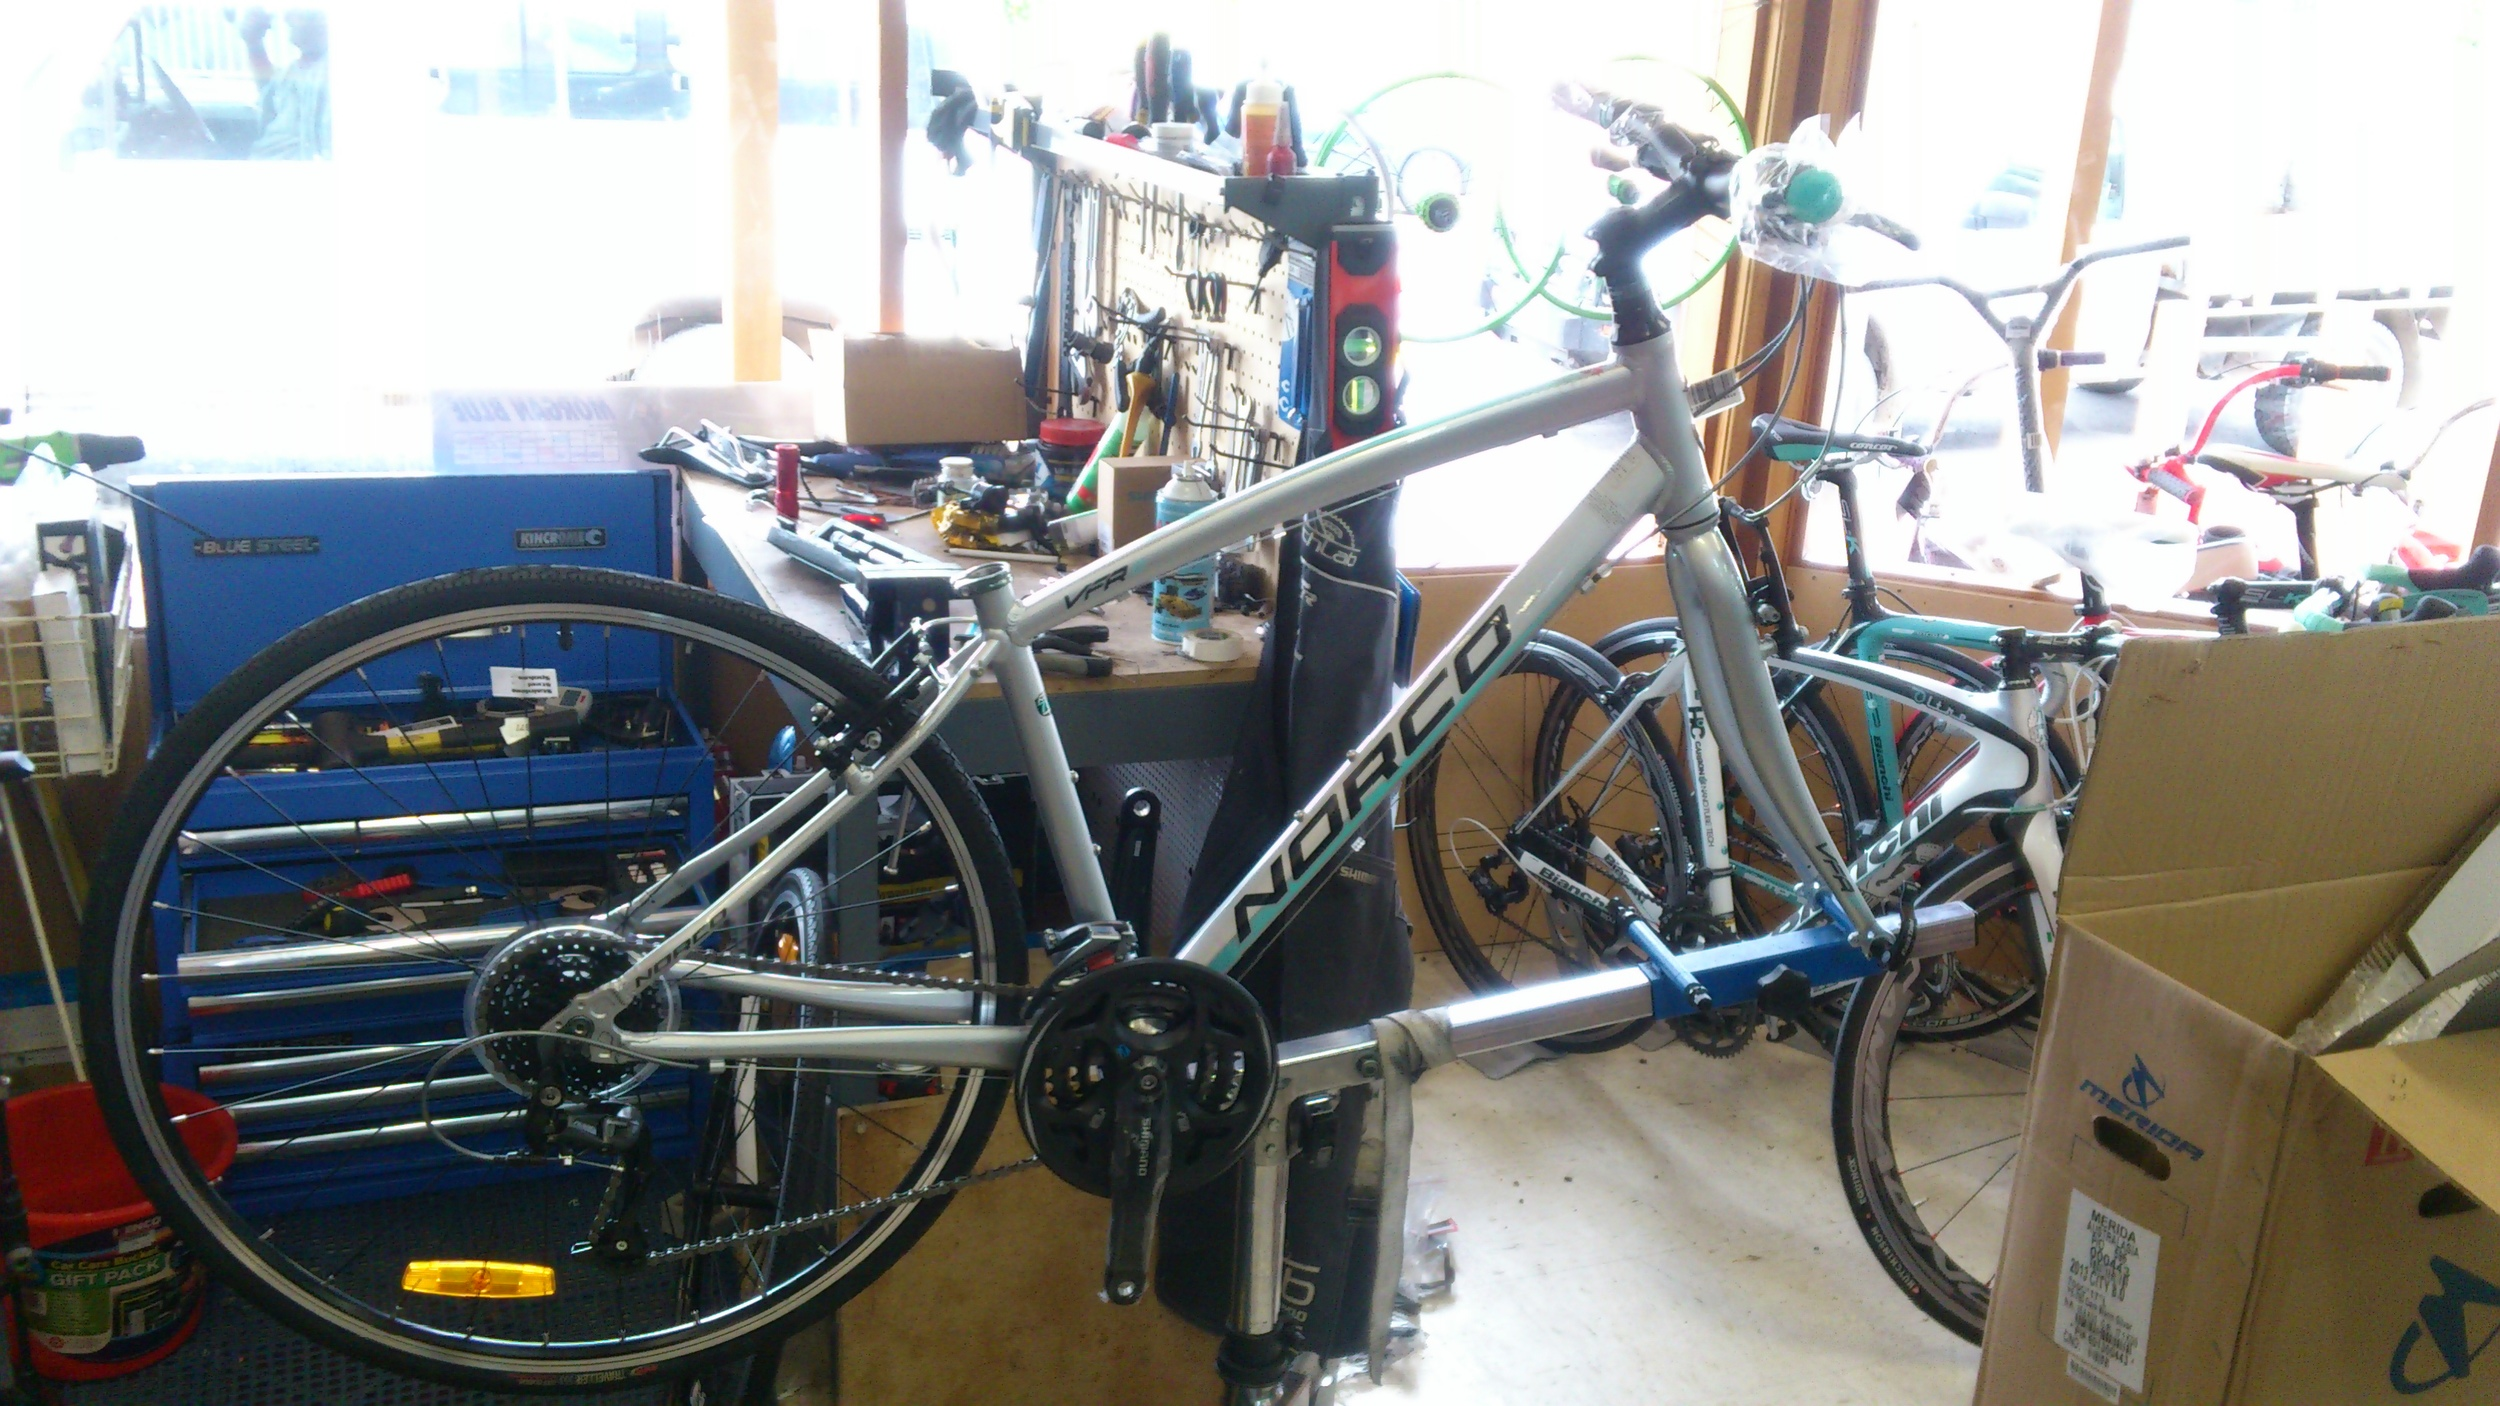 Bike ready for pedals and other parts. In the back gorund is our fully equipped workshop. This enables us to build and service most bike. By the way it is against Australian consumer starndards to sell a bike unassembled.